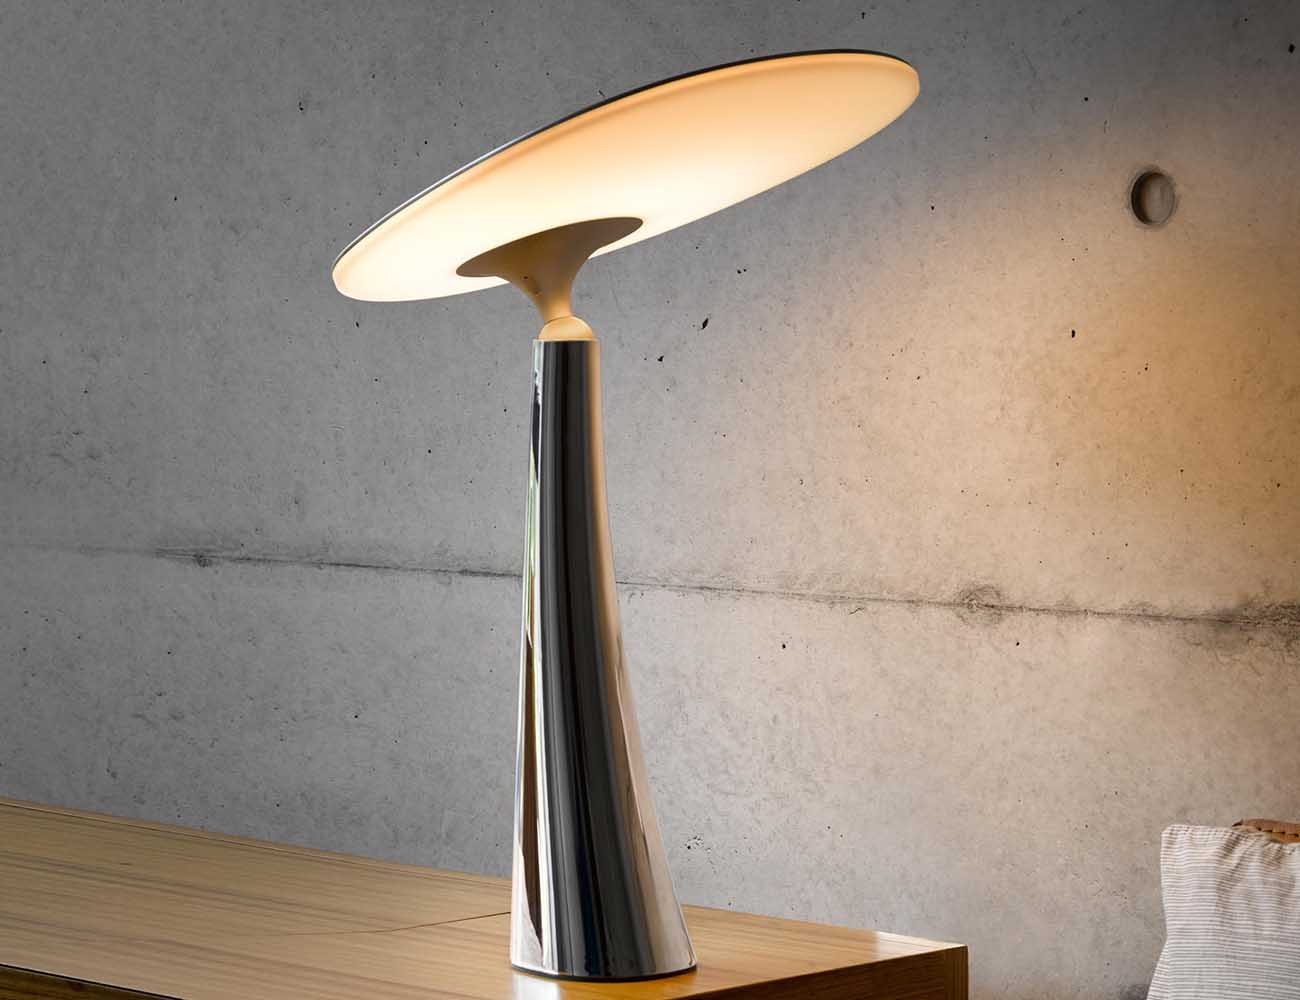 Coral Reef Light By QisDesign U2013 Equipped With Smart Touch Technology ... Idea